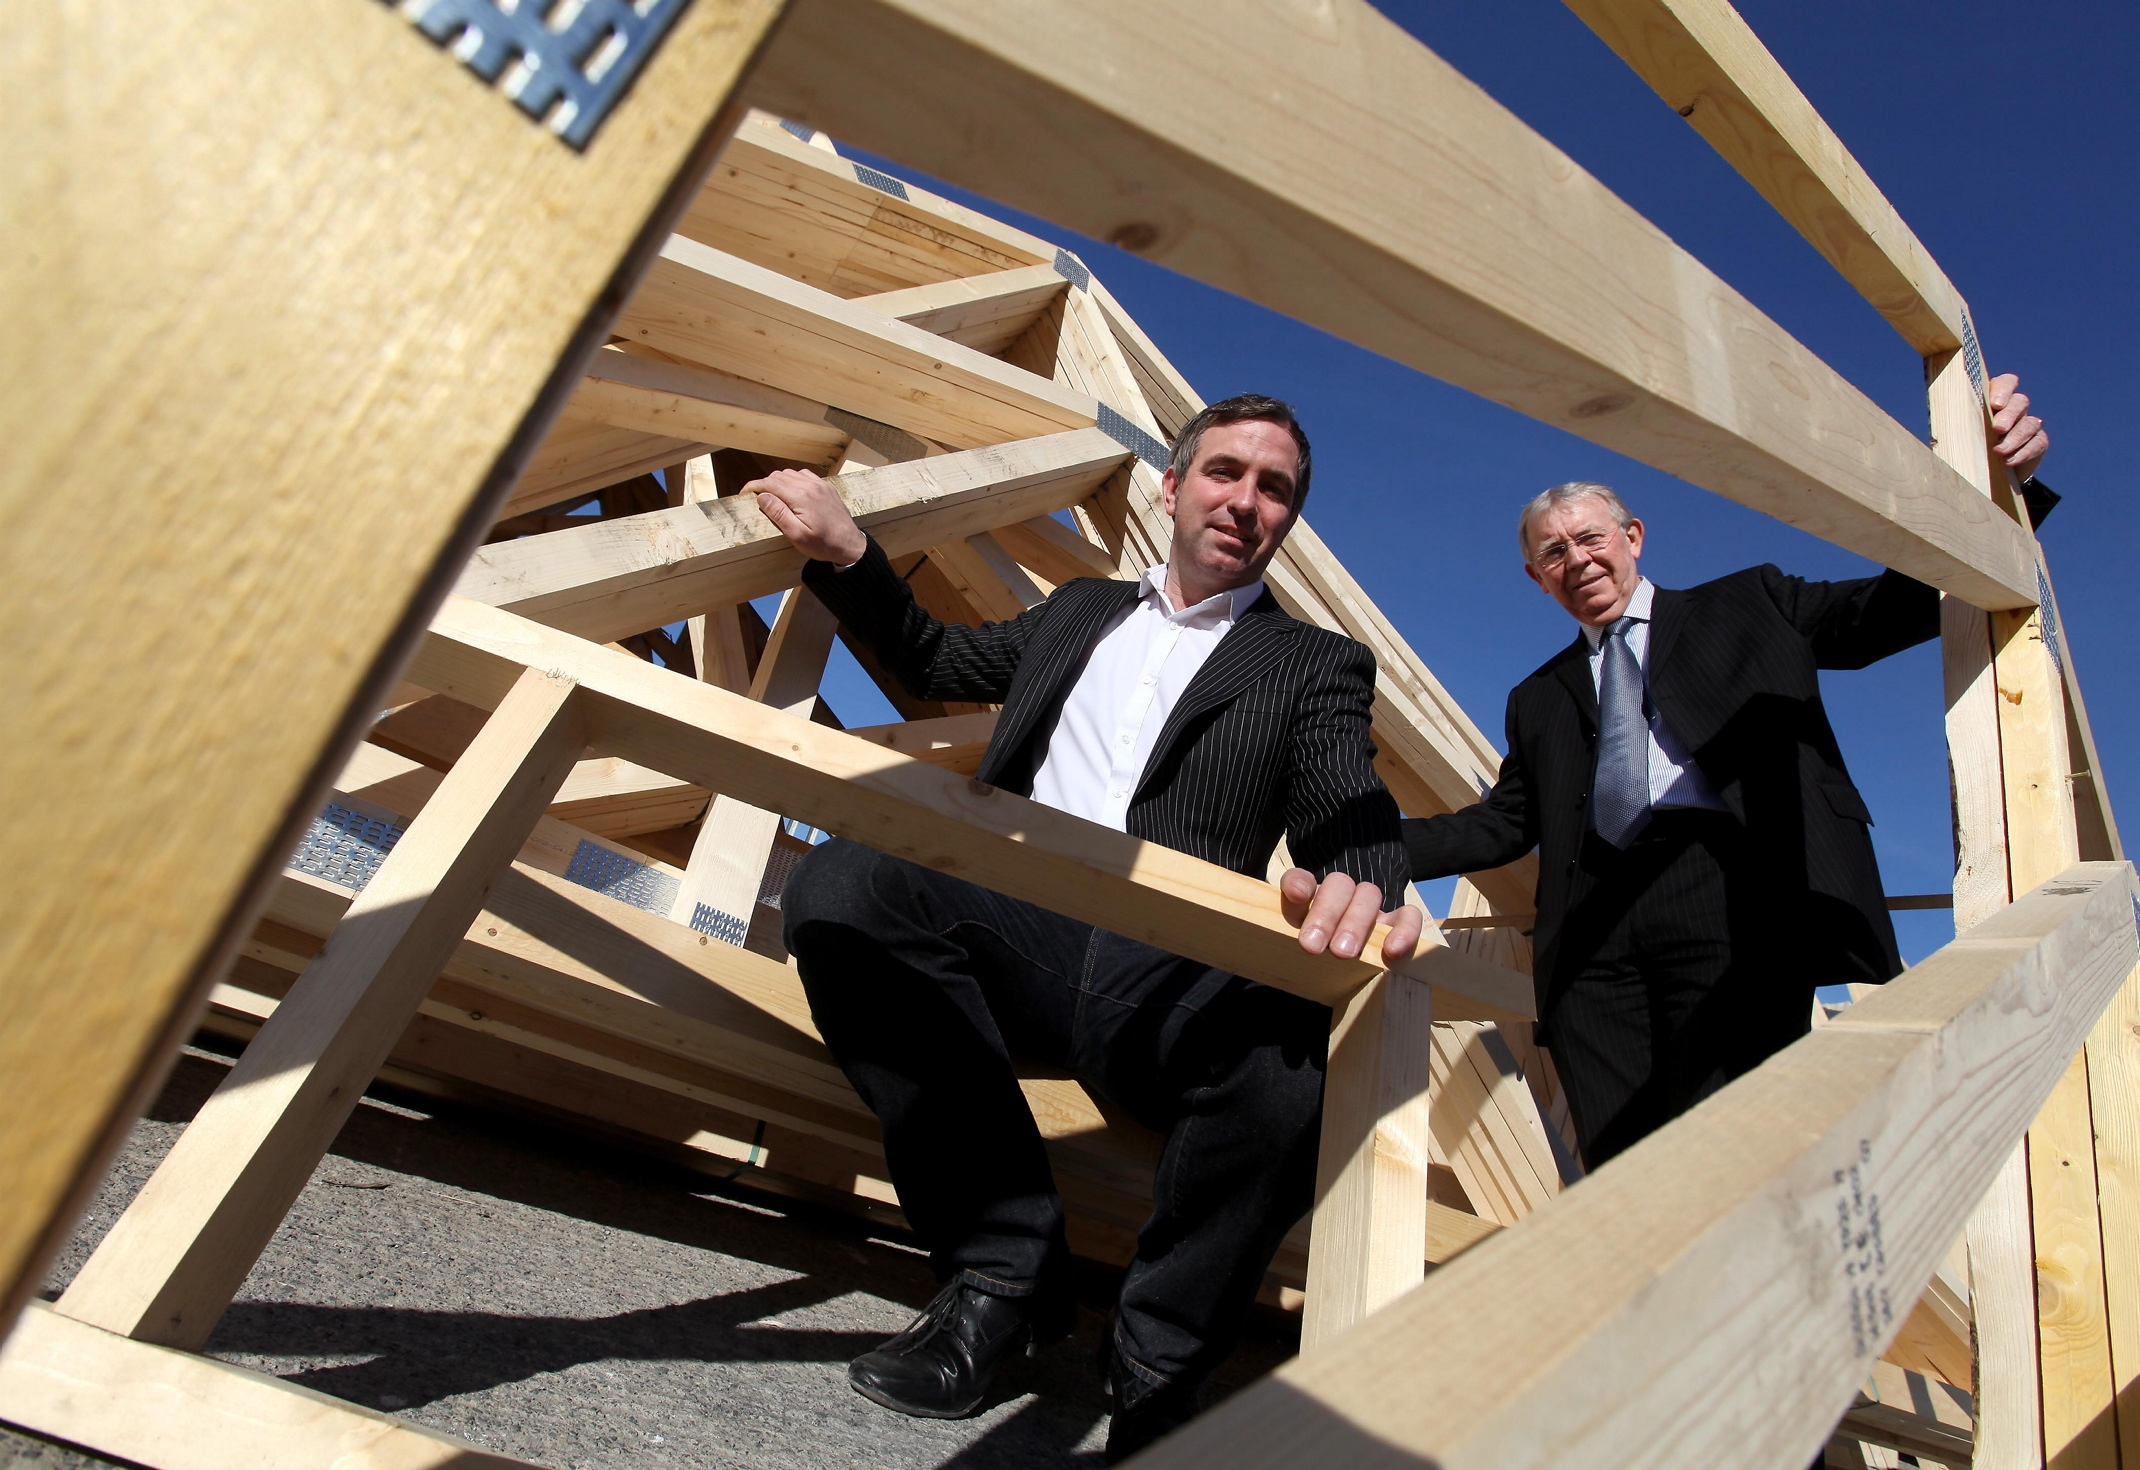 From left: Steve Harris of Fencehouse Truss wth Cllr Hary Trueman, Deputy Leader of Sunderland City Council